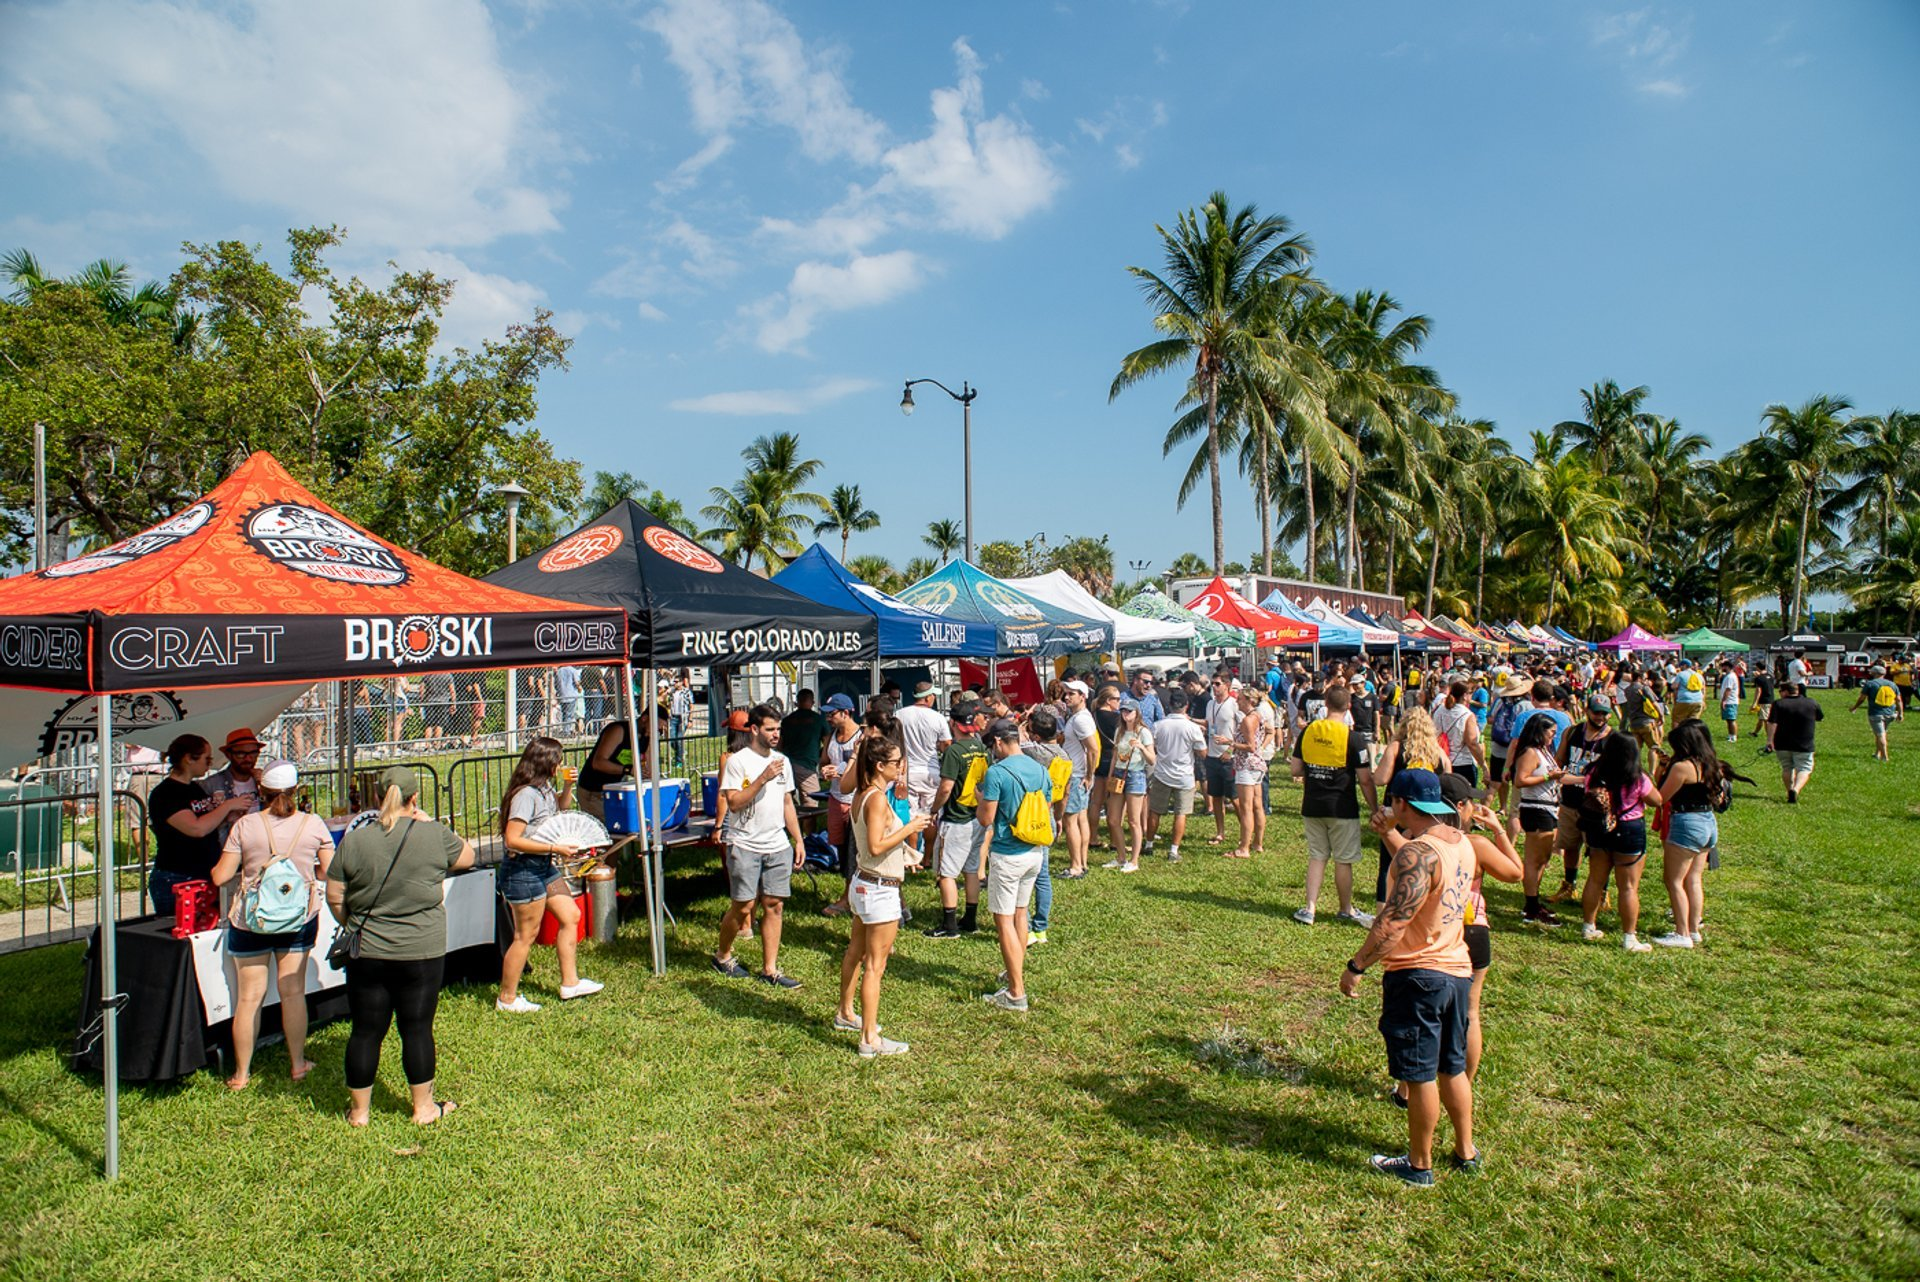 Grovetoberfest in Miami - Best Season 2020